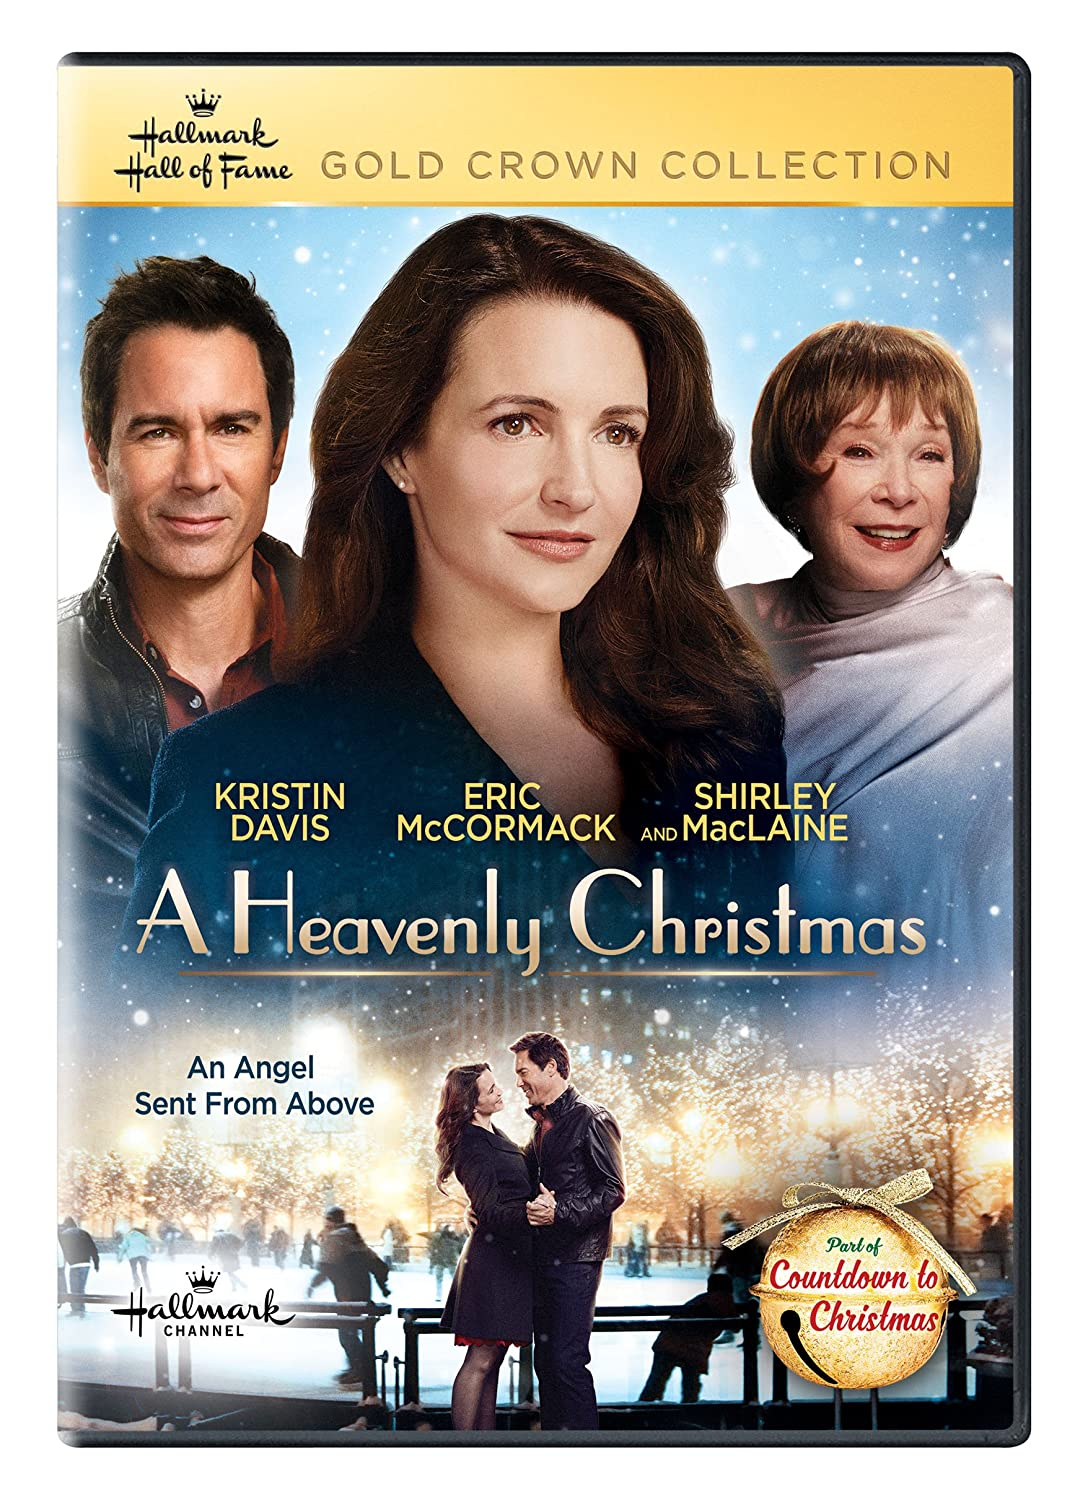 Amazon.com: Hallmark Hall of Fame: A Heavenly Christmas: Kristin ...